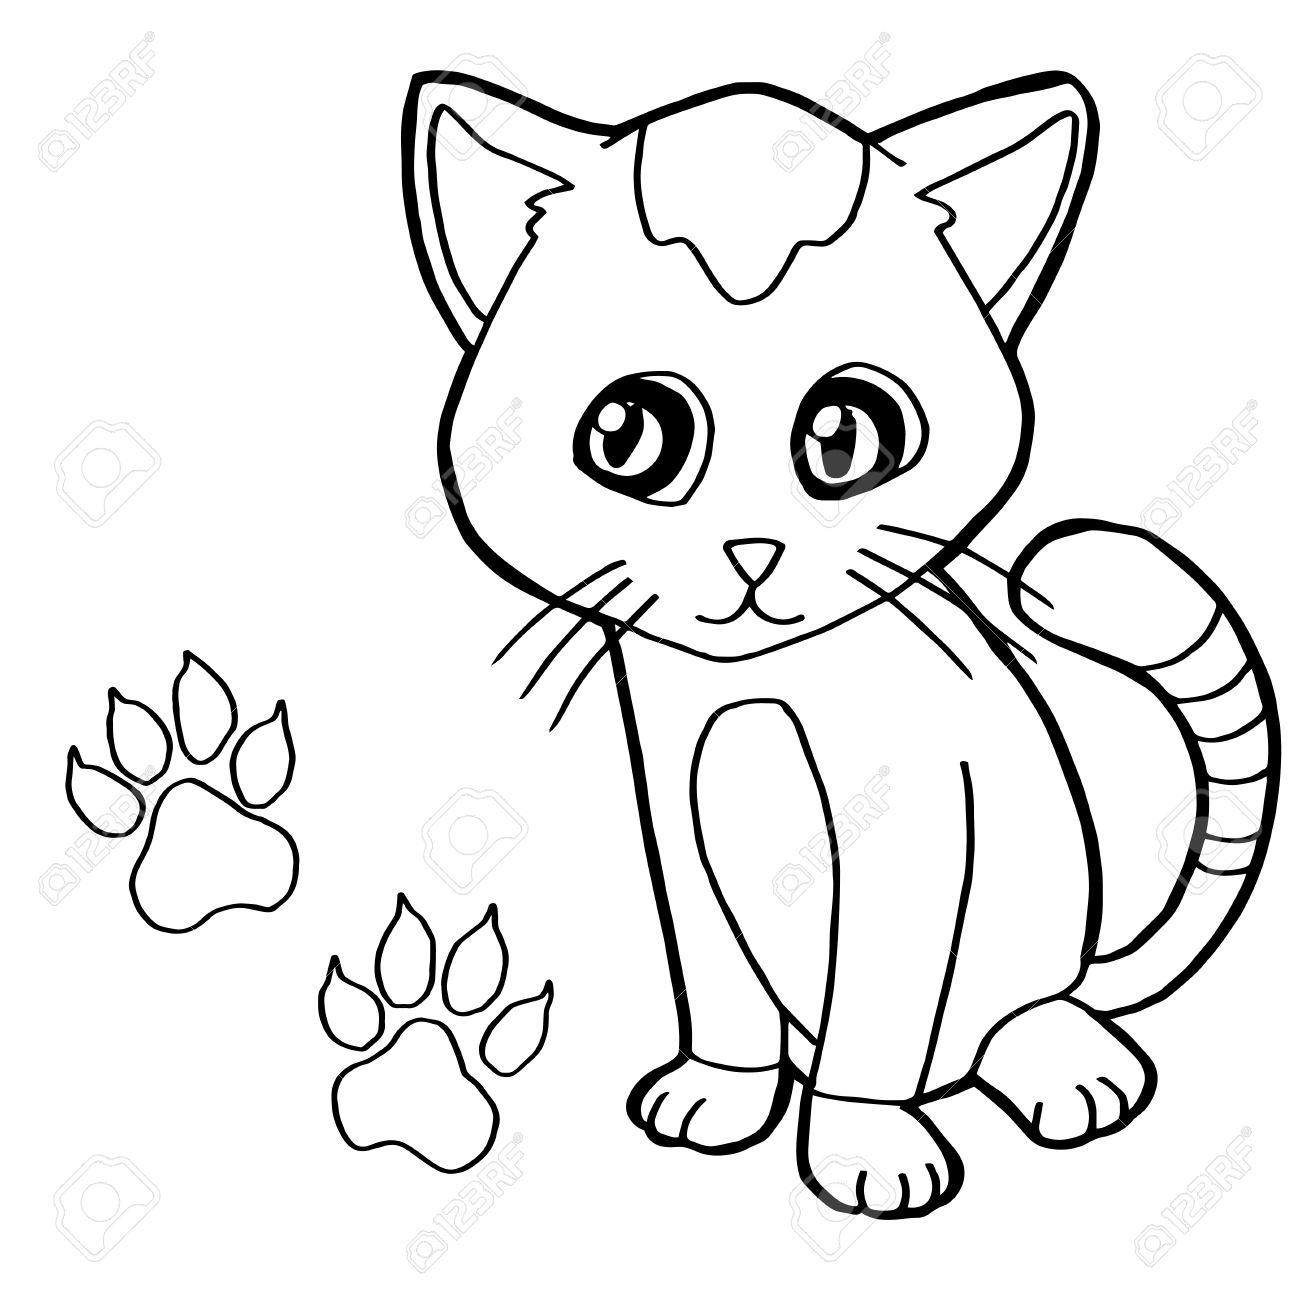 Paw Print With Cat Coloring Page Vector Royalty Free Cliparts ...